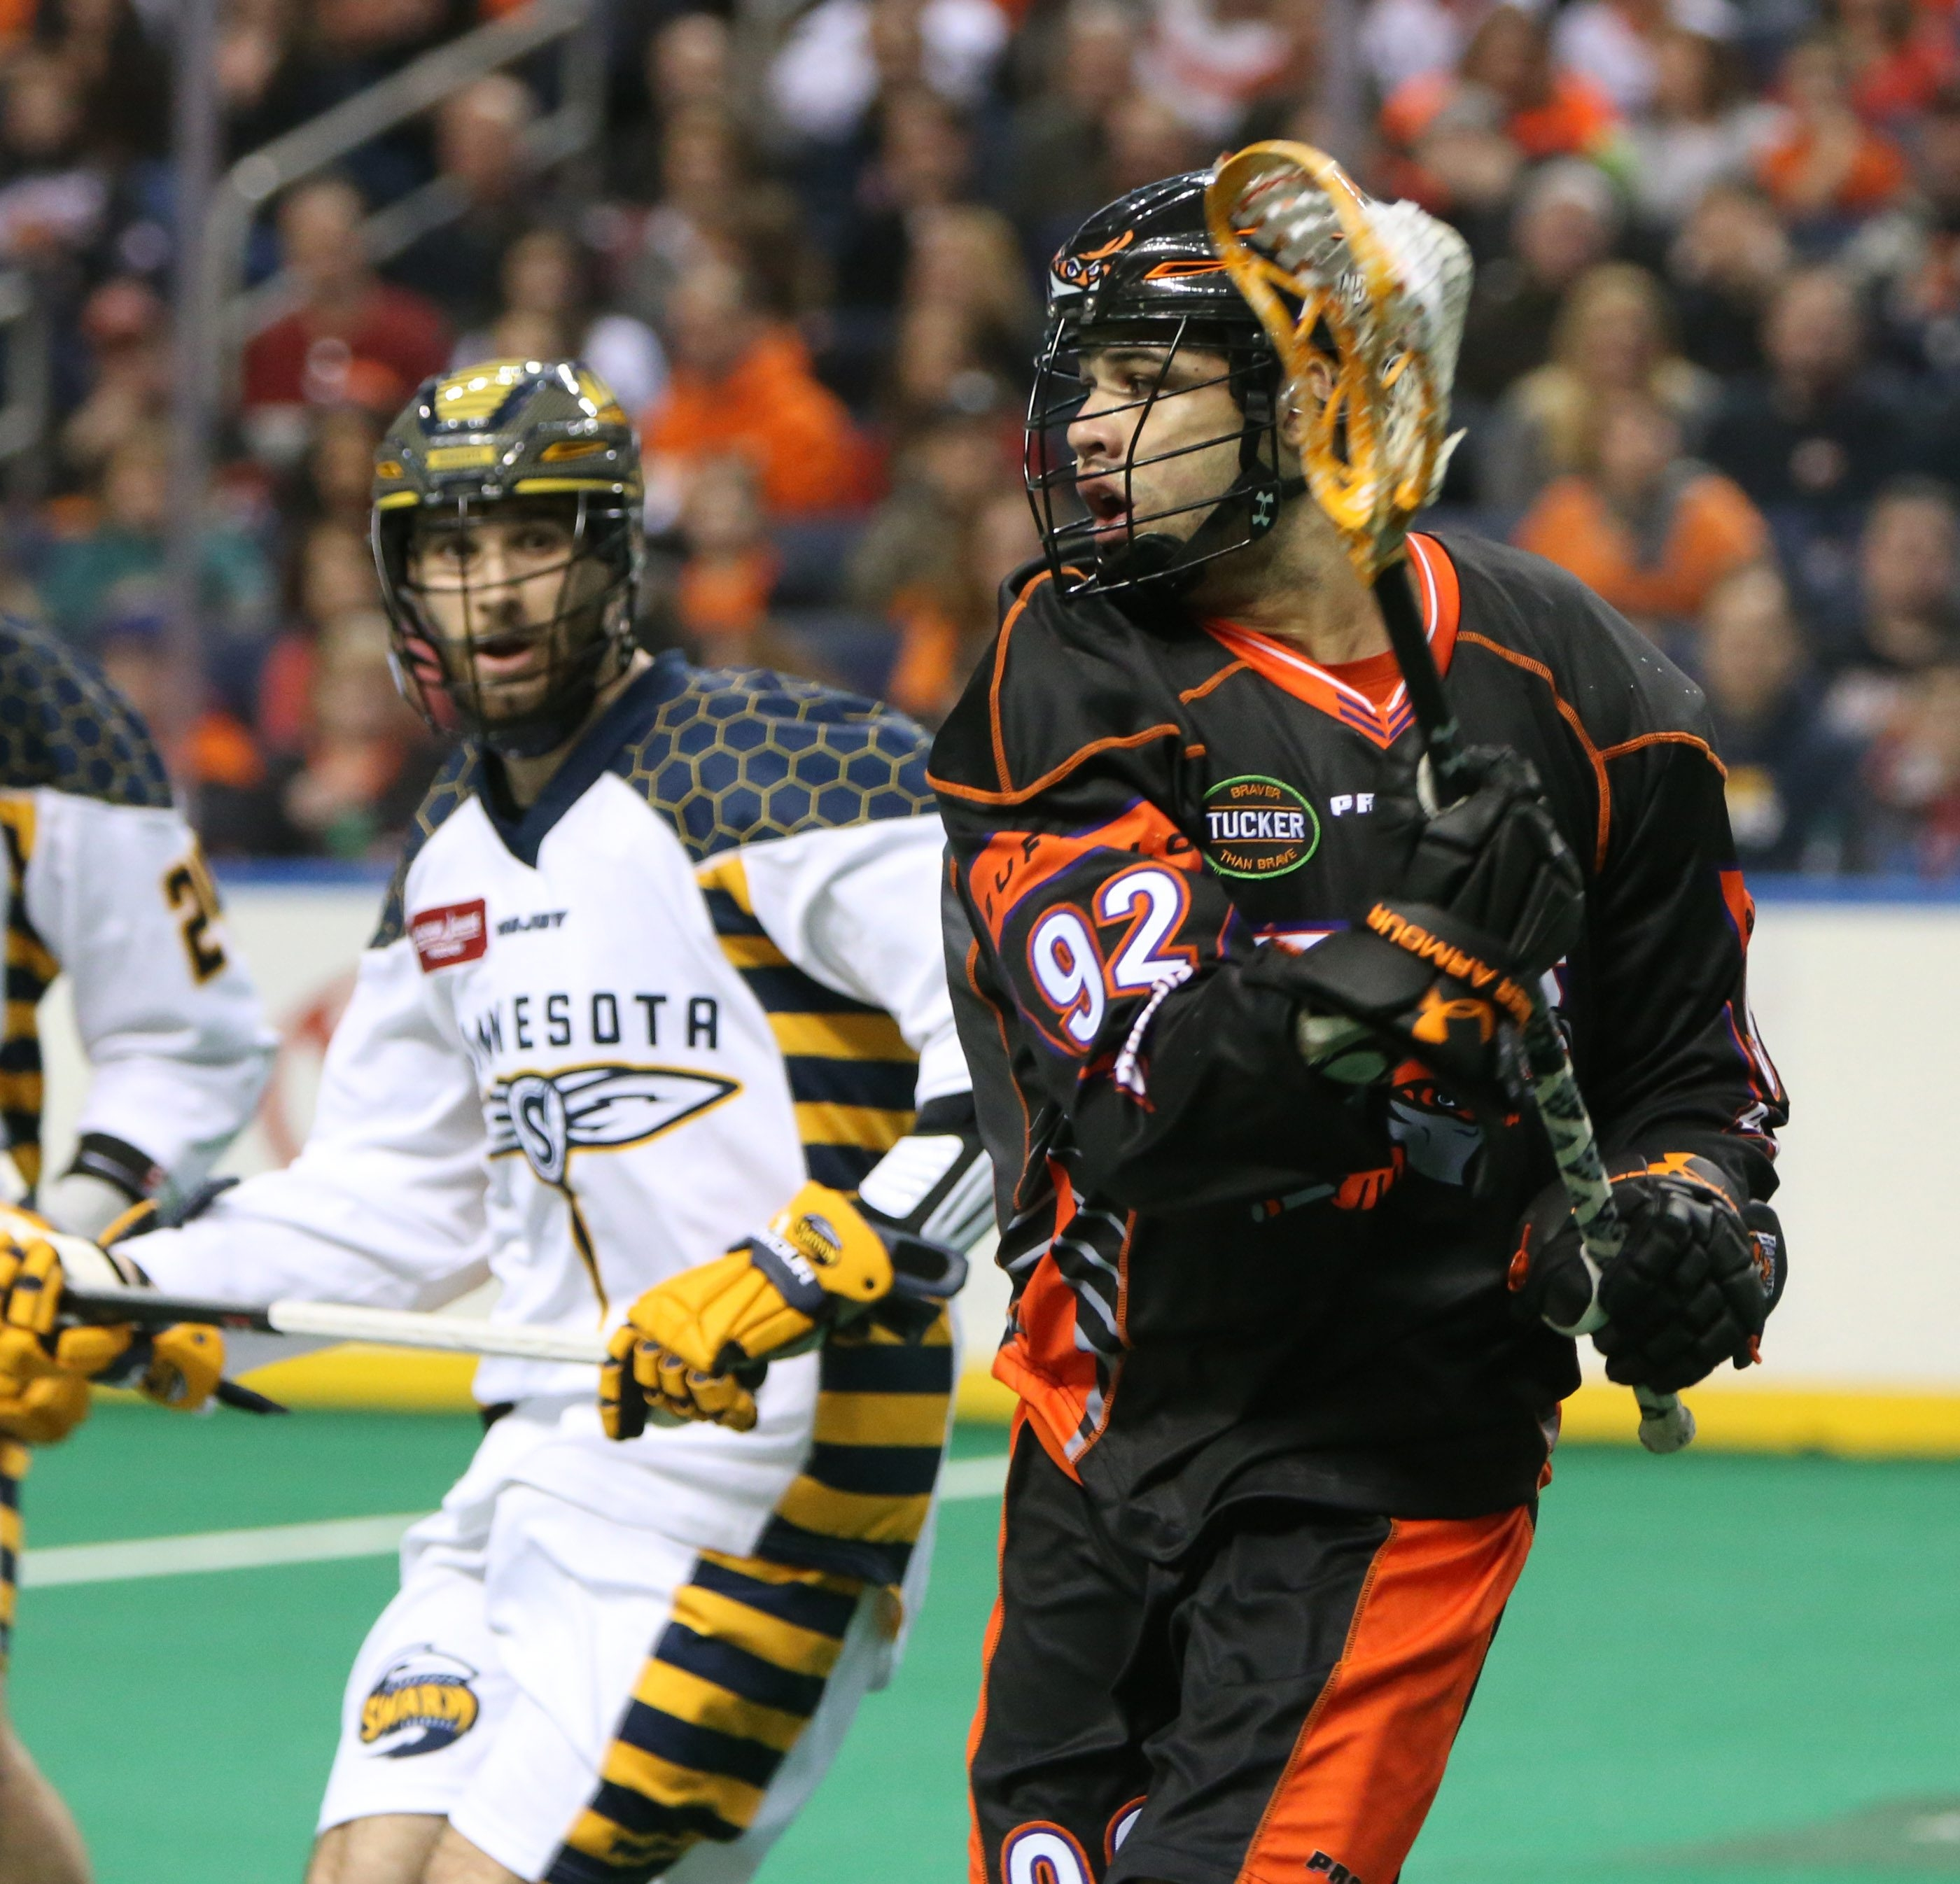 Bandits' D'Hane Smith beats Minnesota's Alex Crepinsek in the second quarter of their game at First Niagara Center on Friday, Jan. 30, 2015.  (James P. McCoy/ Buffalo News)